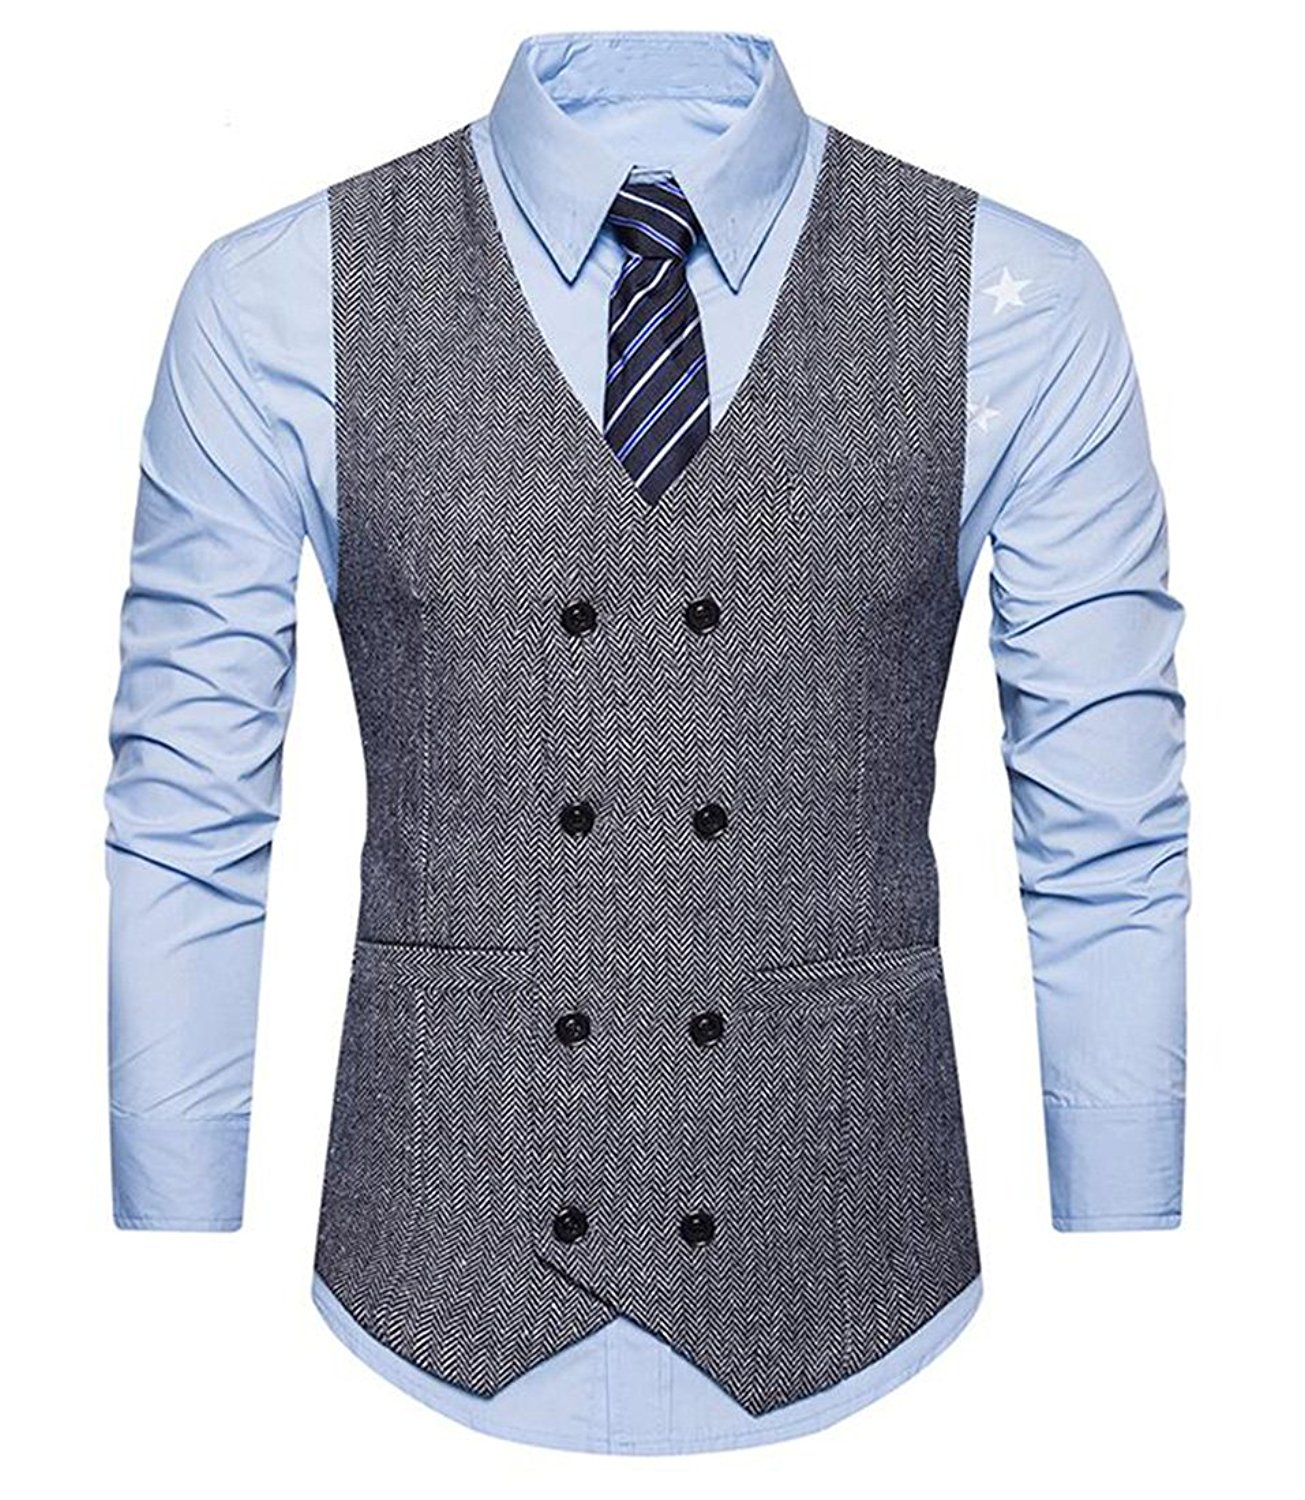 Oberora Mens V-Neck Double-Breasted Wool Sleeveless Jacket Business Suit Vest